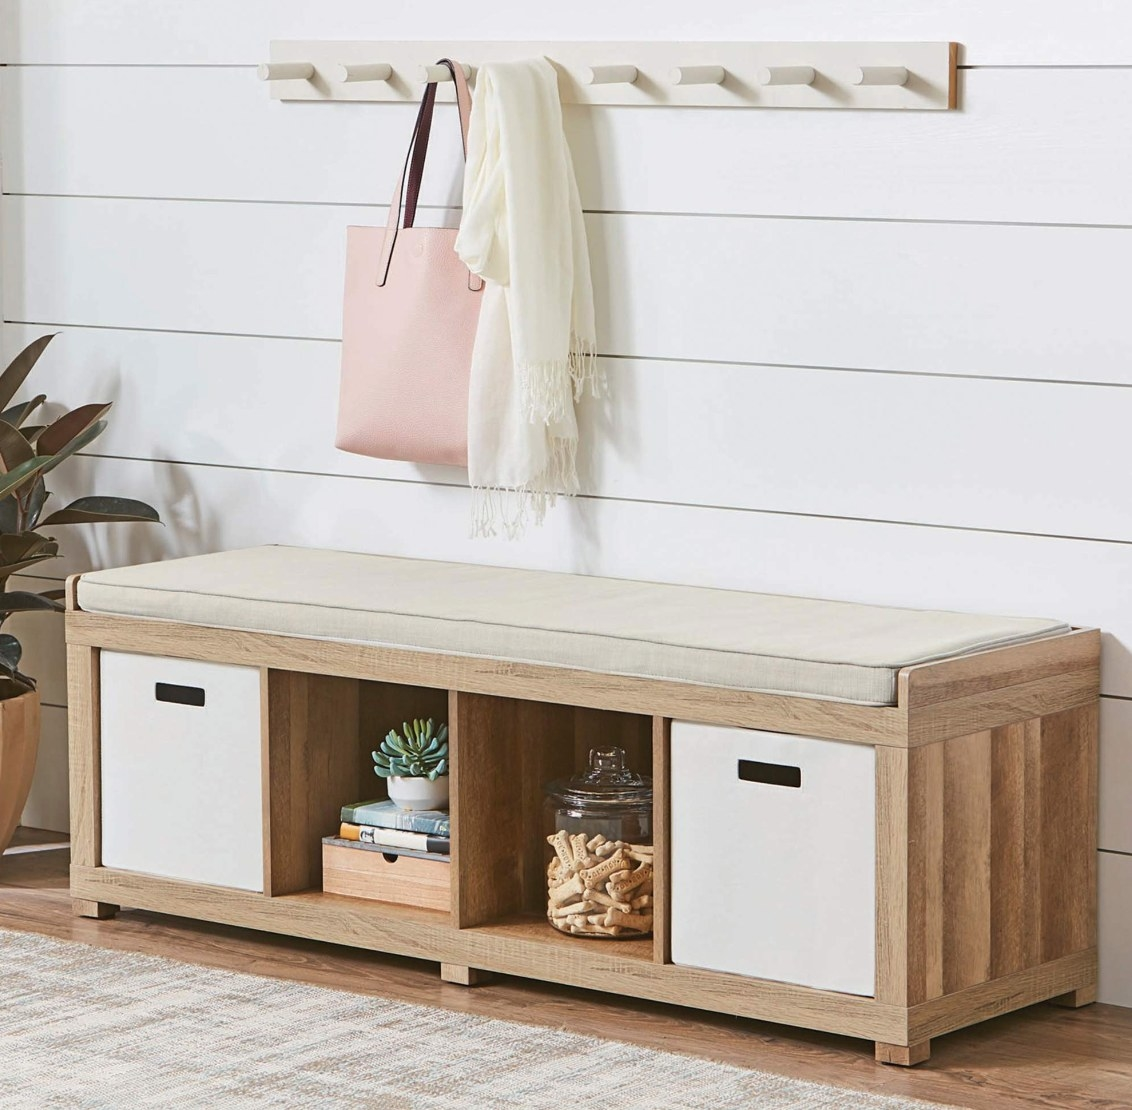 The four cube organizer storage bench